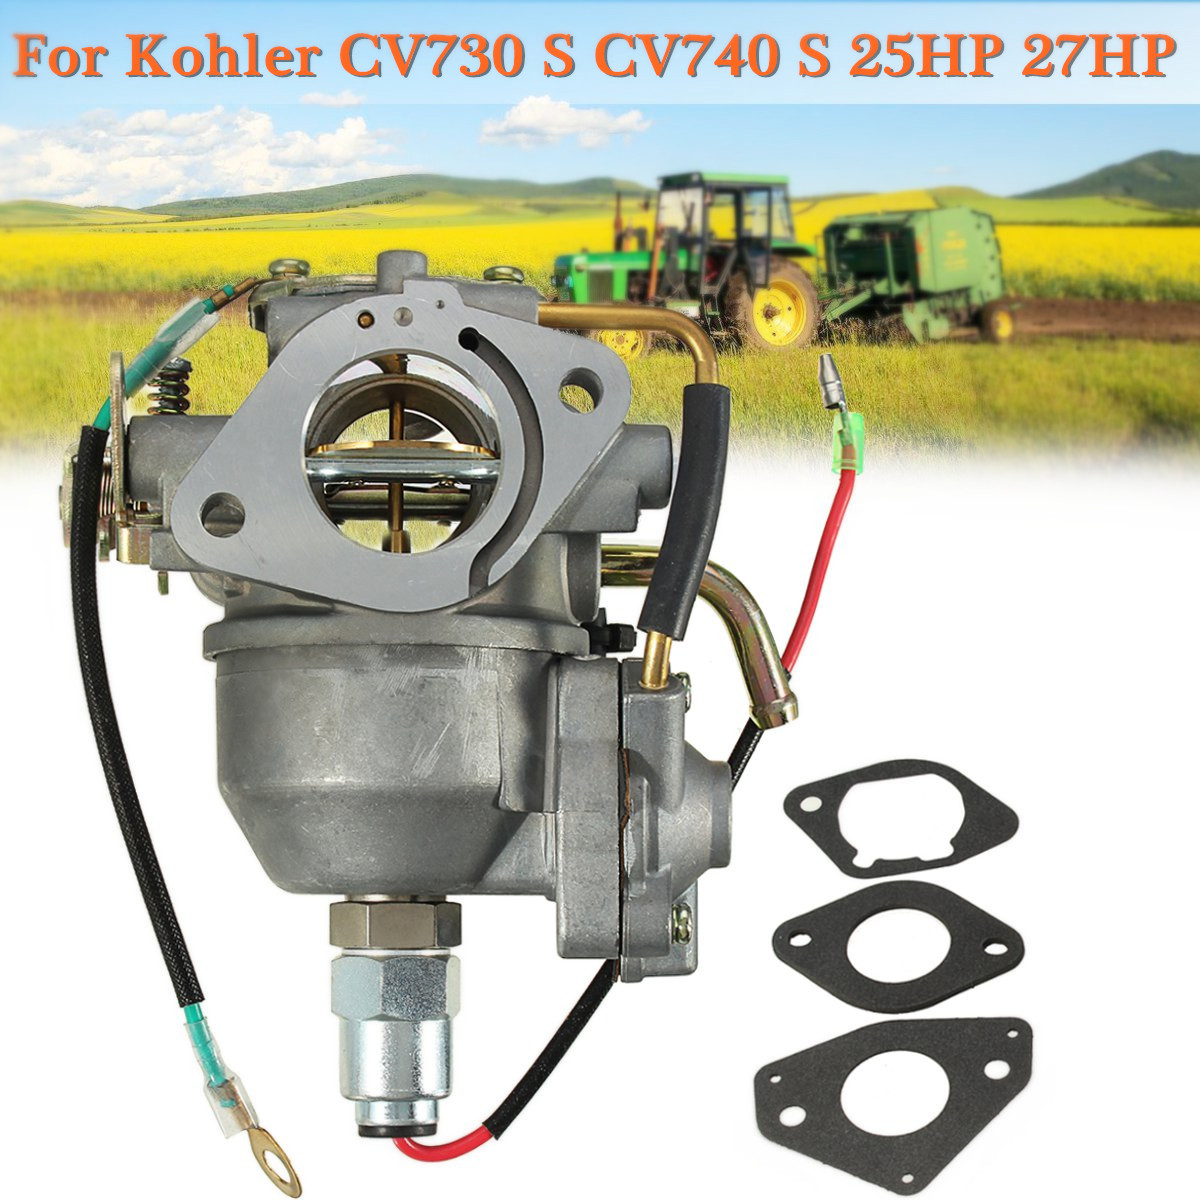 US $35 78 8% OFF|Carburetor for Kohler CV730 S CV740 S 25HP 27HP Engine  Tractor Carb 24853102 S-in Carburetor Parts from Automobiles & Motorcycles  on